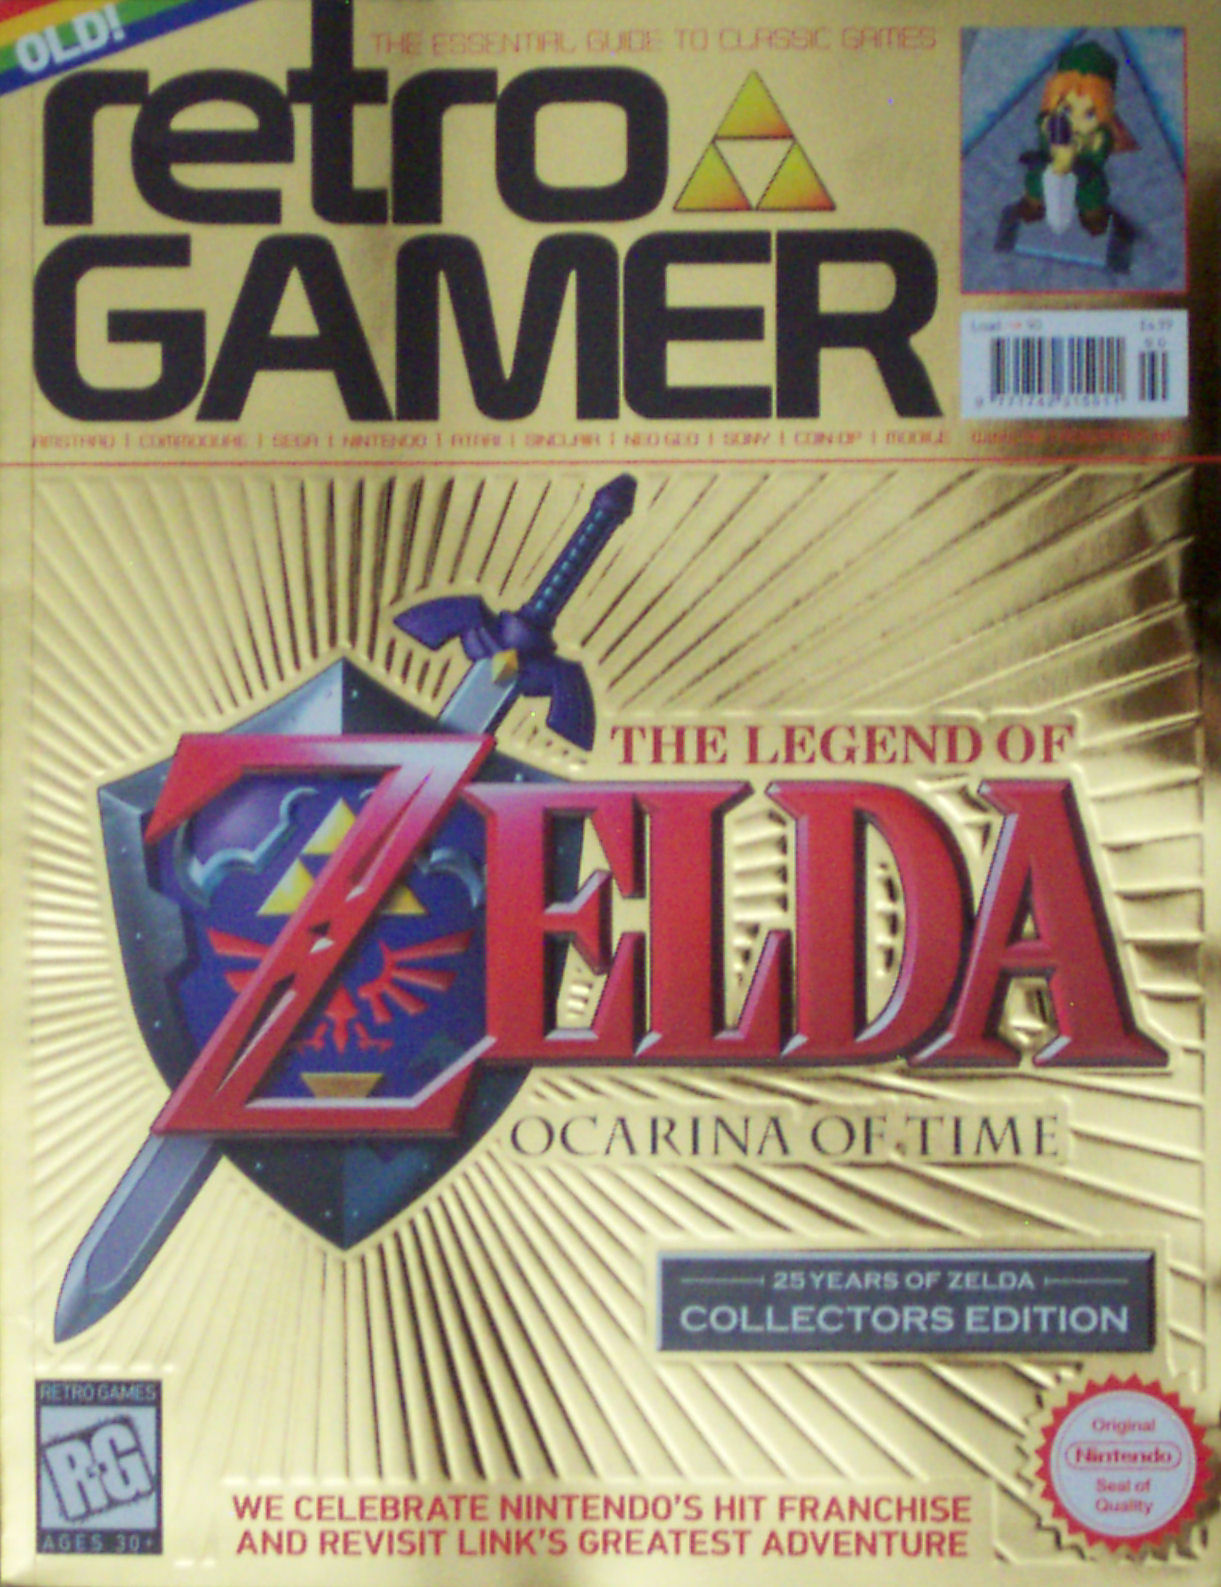 Retro Gamer Issue 90 | Magazines from the Past Wiki | FANDOM